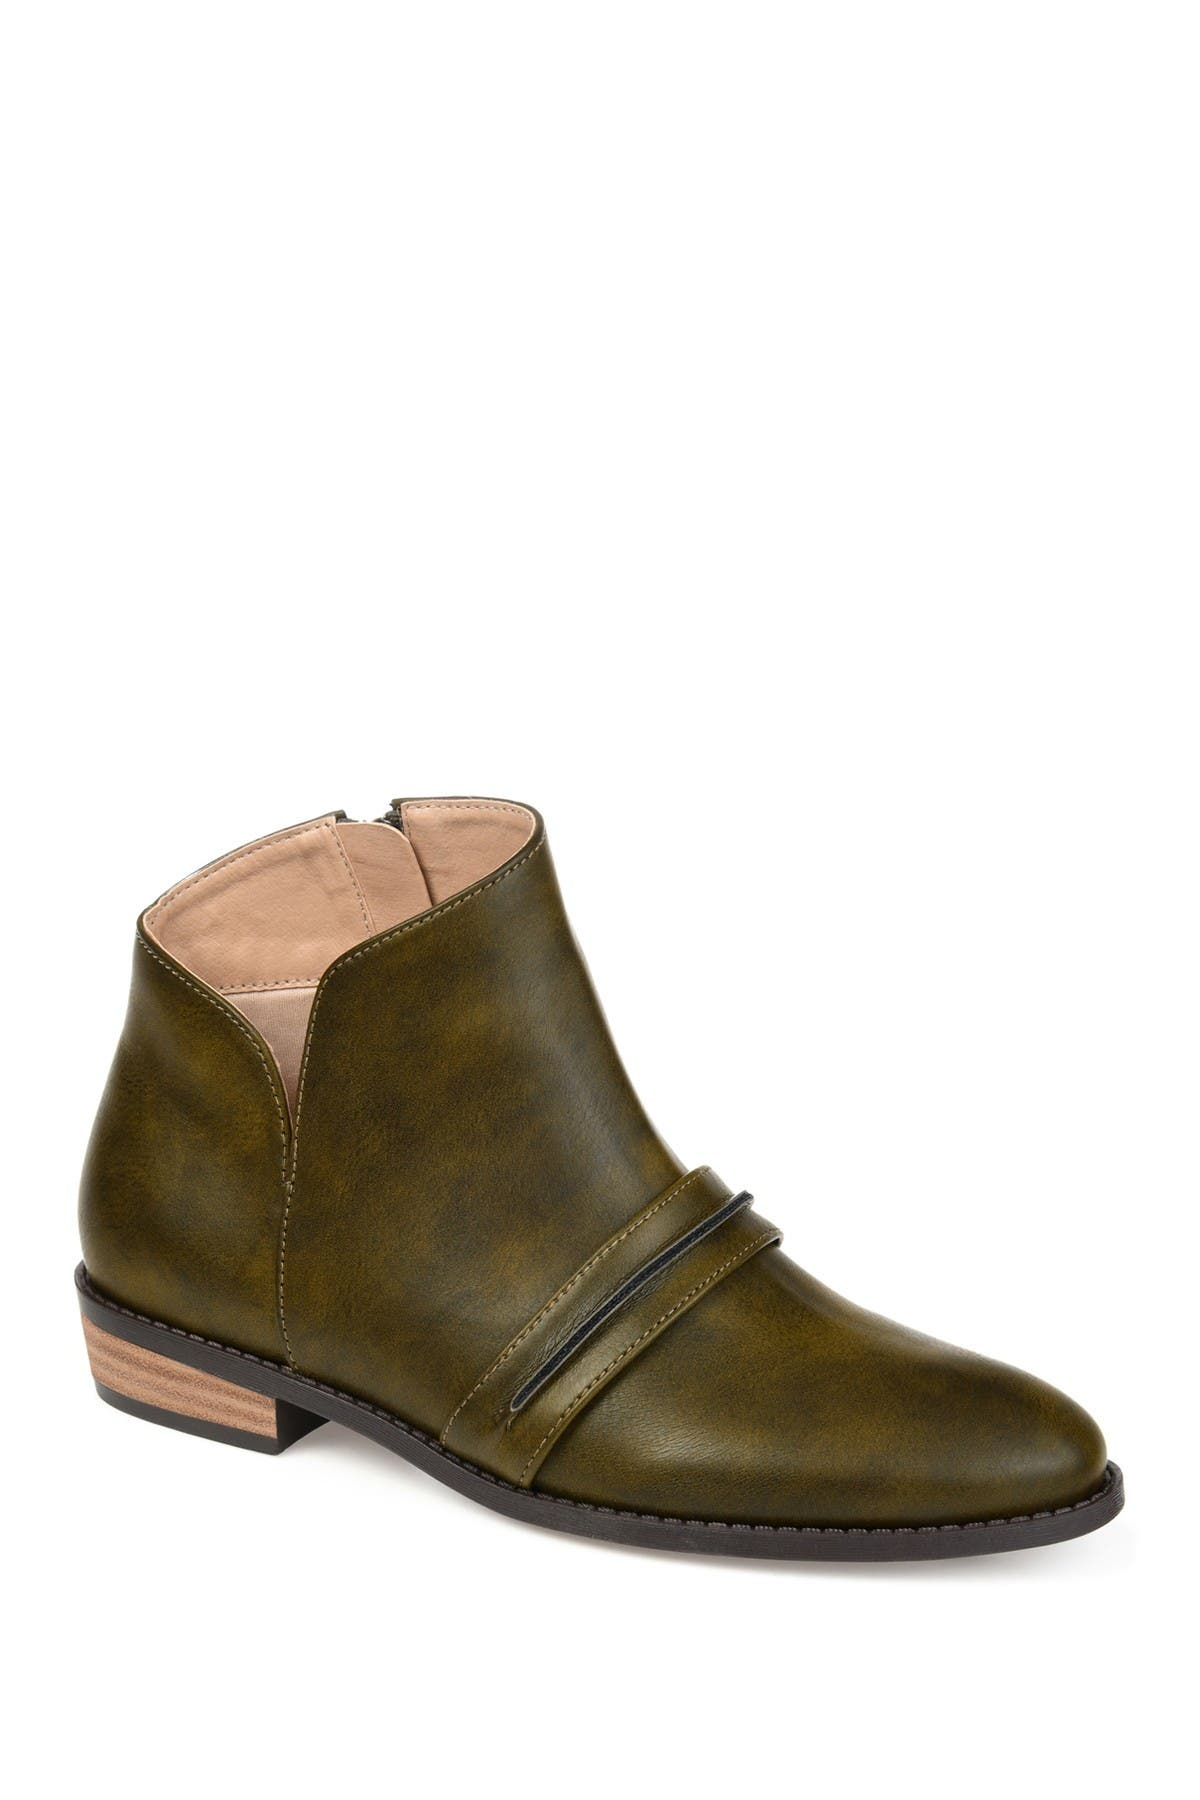 Image of JOURNEE Collection Harlow Ankle Bootie